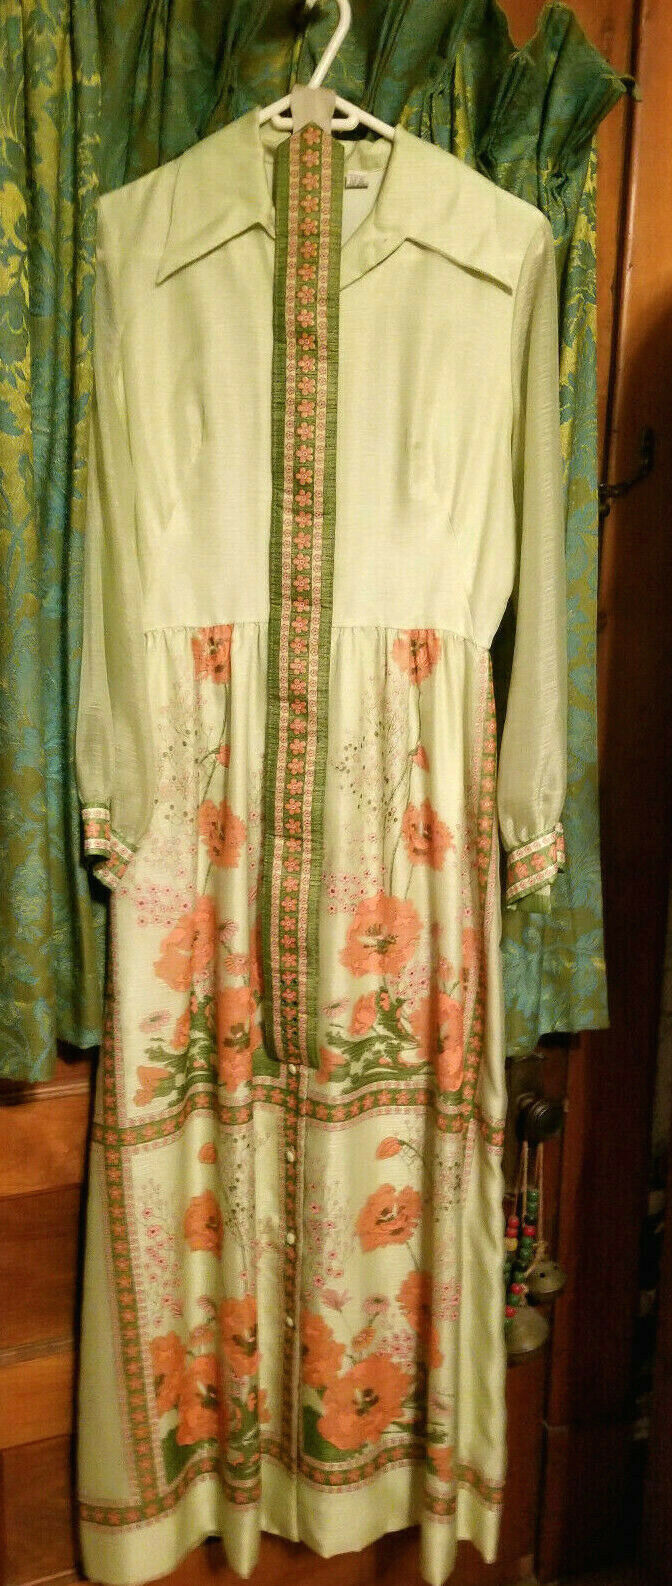 Vintage ALFRED SHAHEEN Apricot Floral Sleeveless Maxi Dress